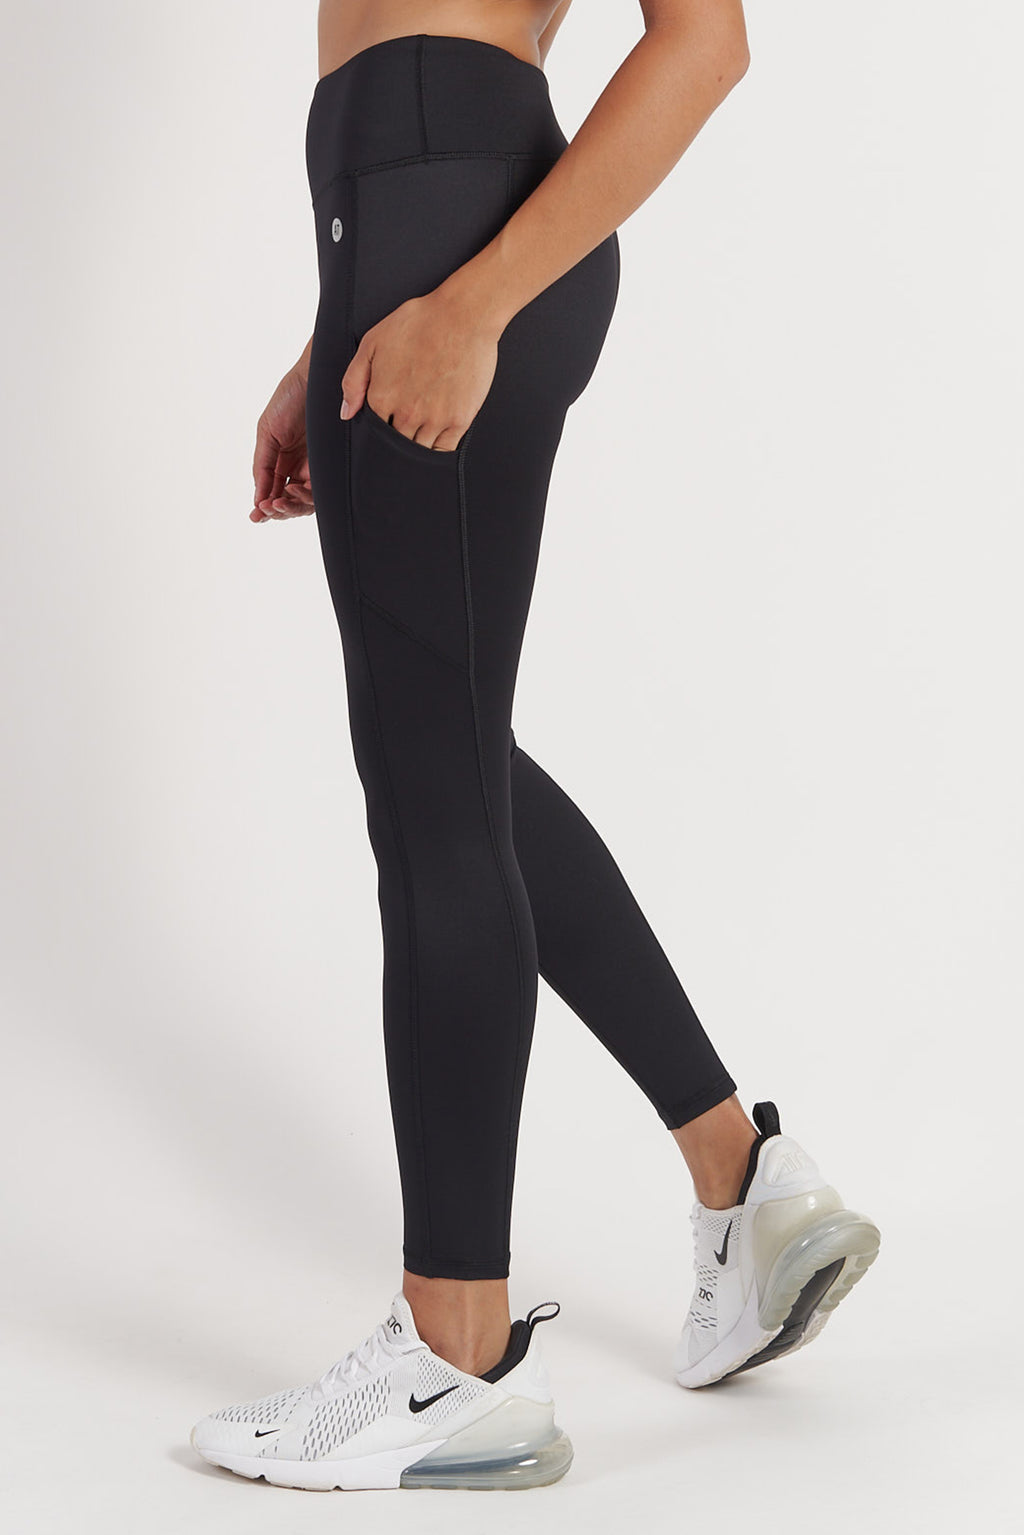 full-length-gym-pocket-tights-black-small-side